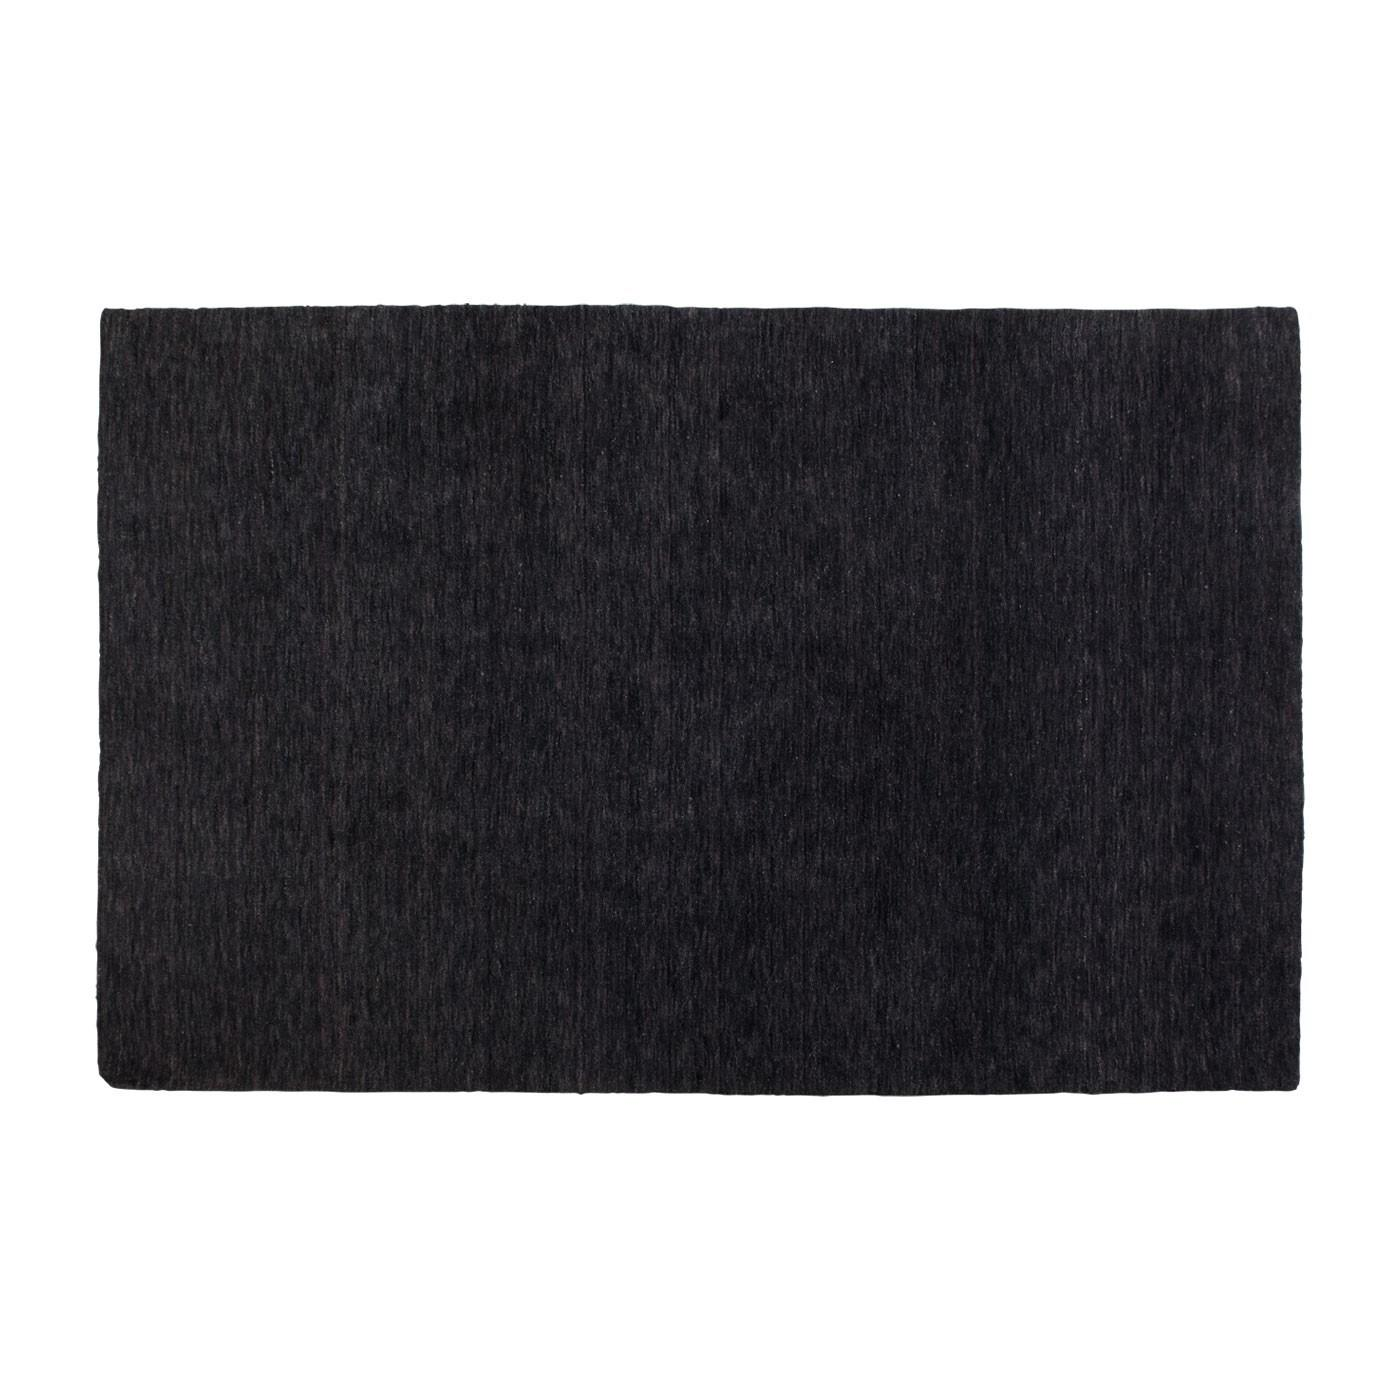 Hotel Rug Modern Black Area Blu Dot